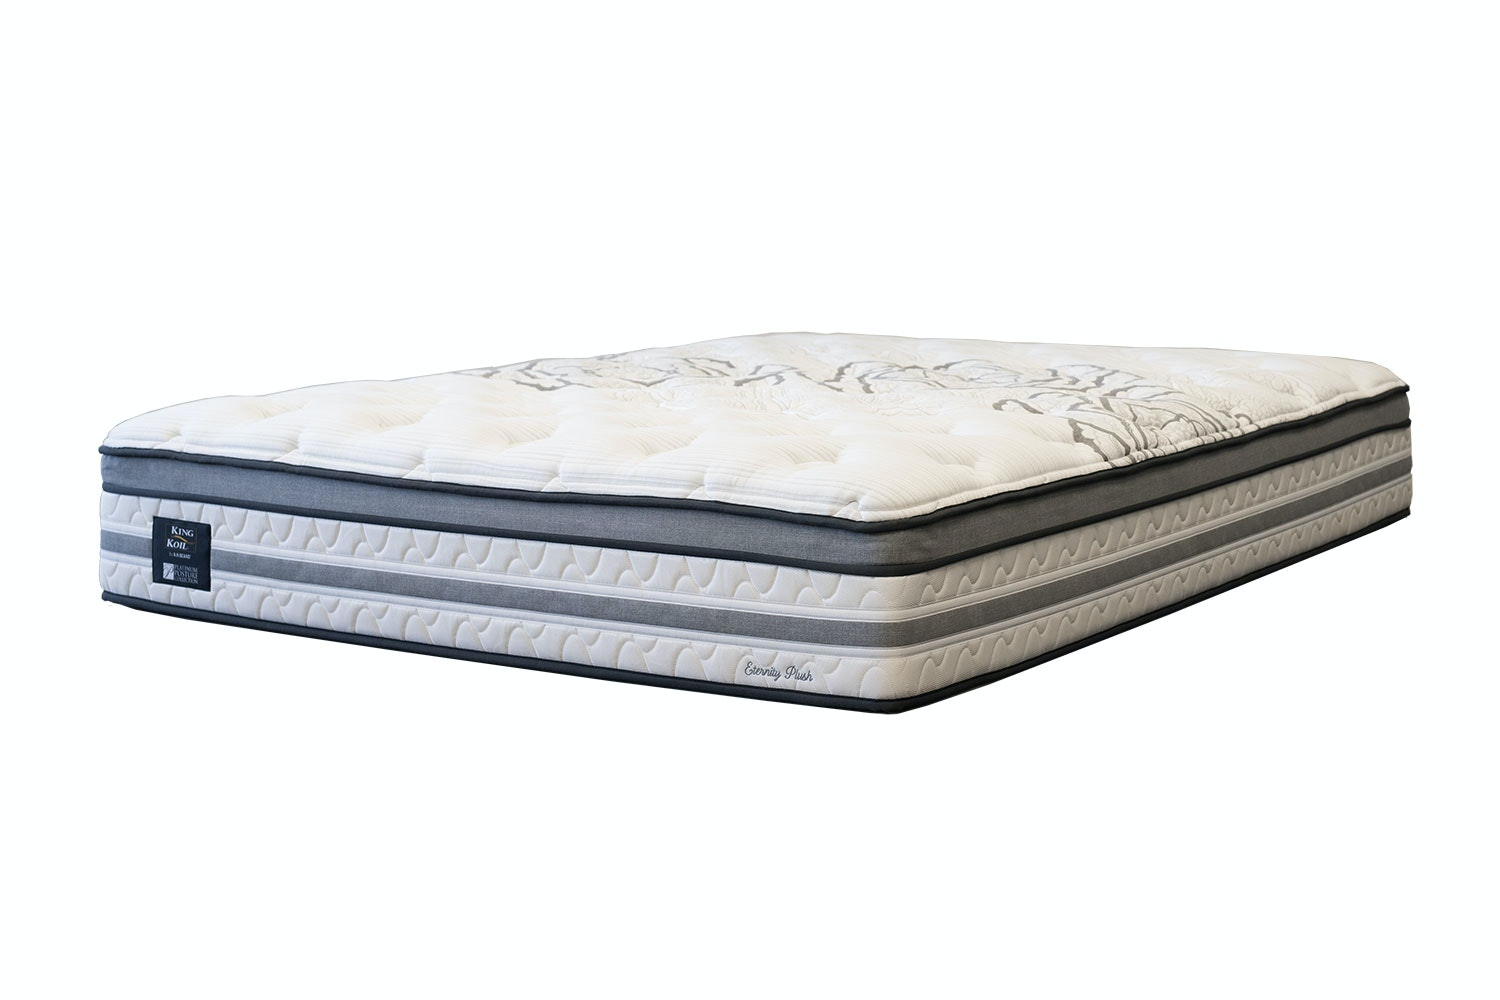 Eternity Plush King Single Mattress by King Koil